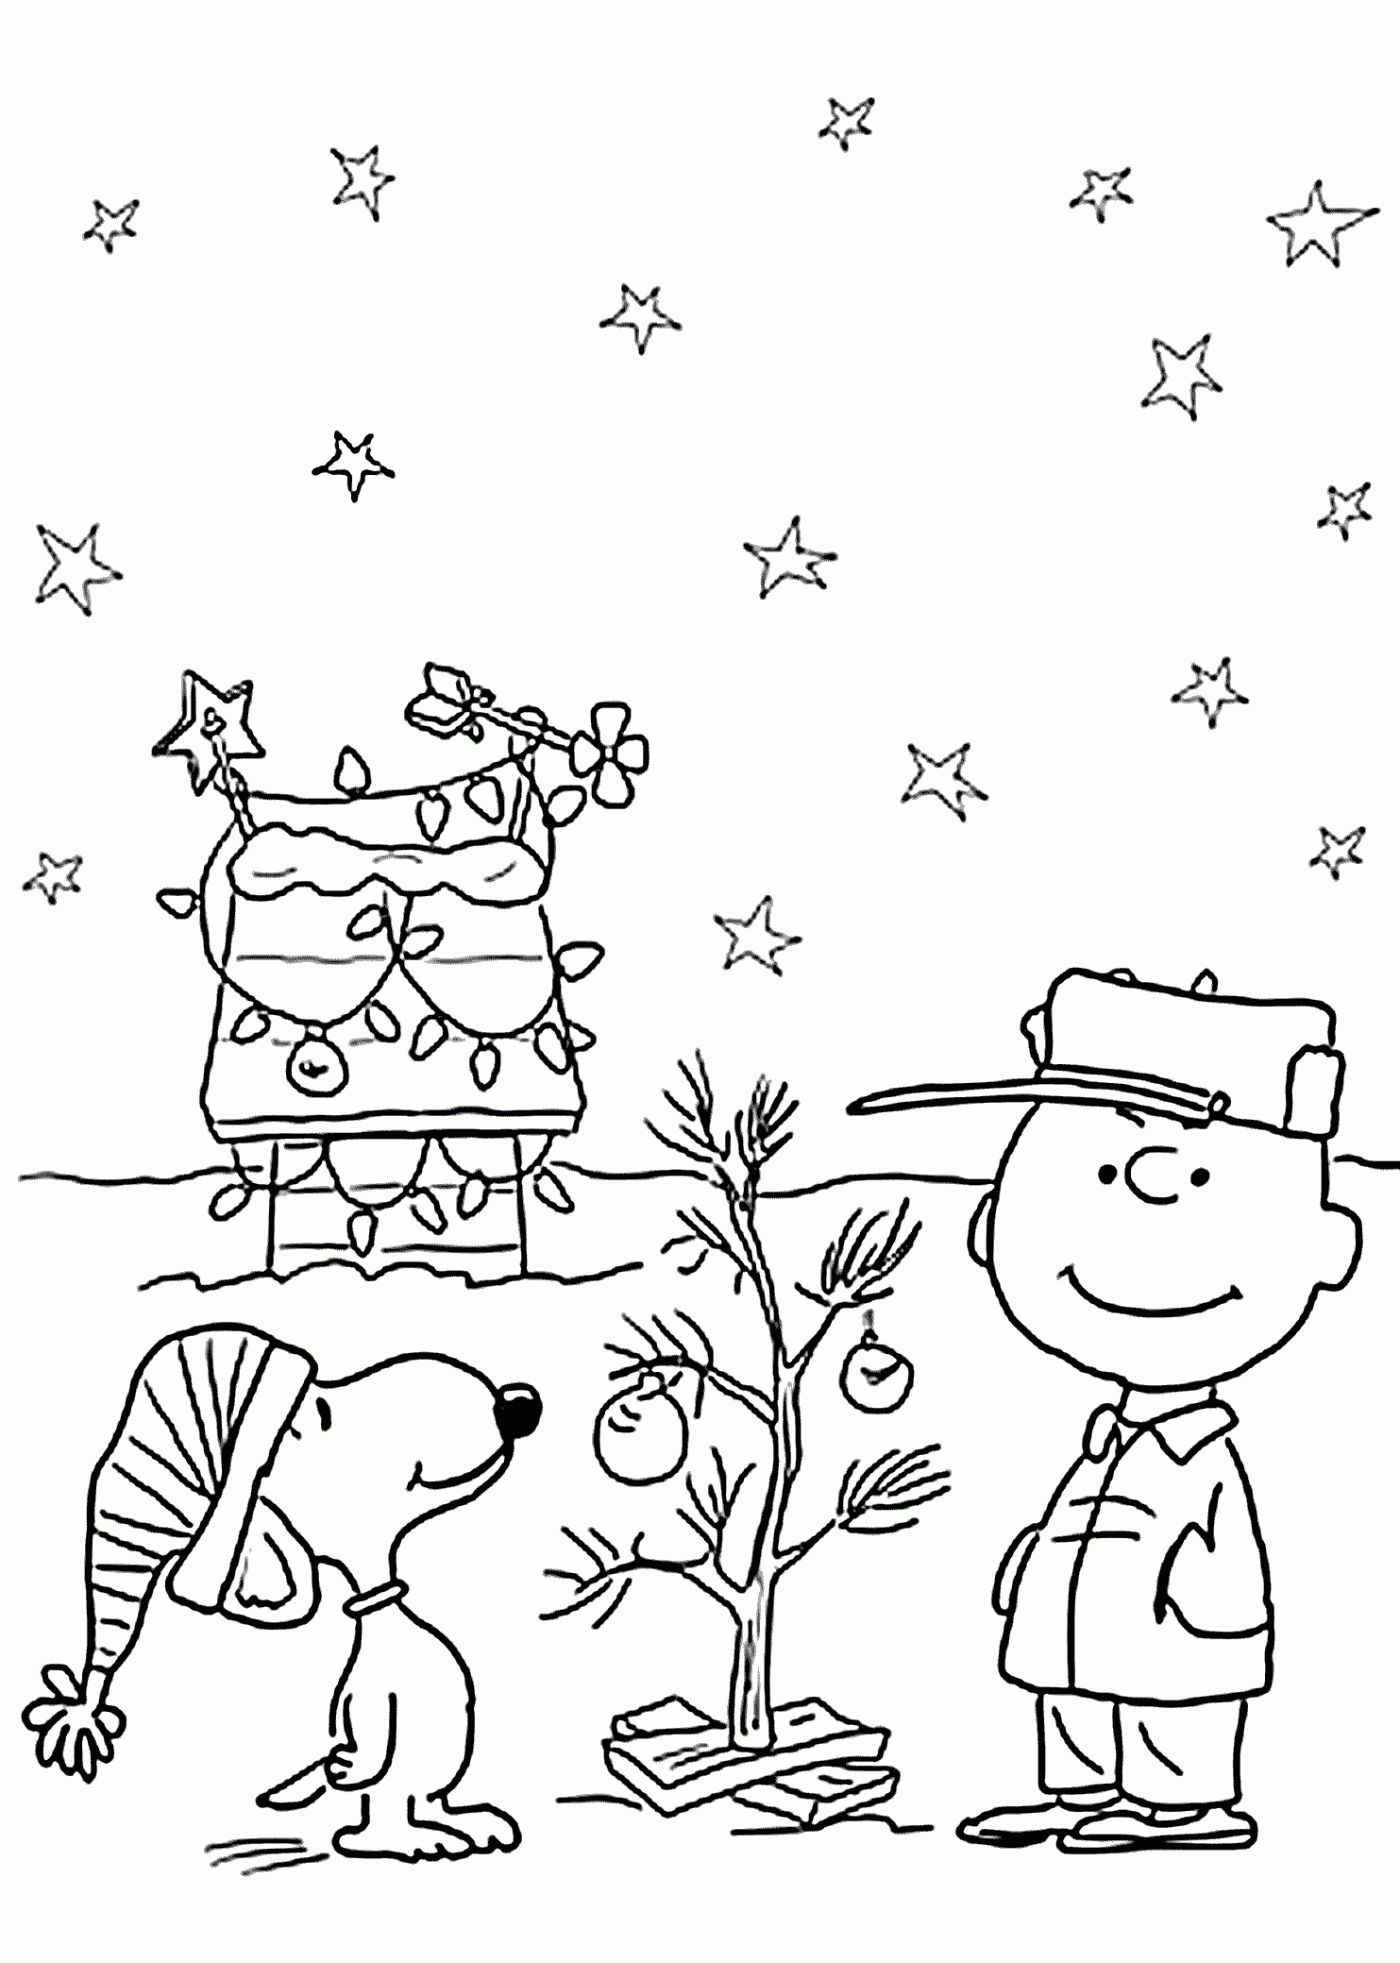 Christmas Coloring Pages Oriental Trading With Best Of Free For Adults To Print Tree